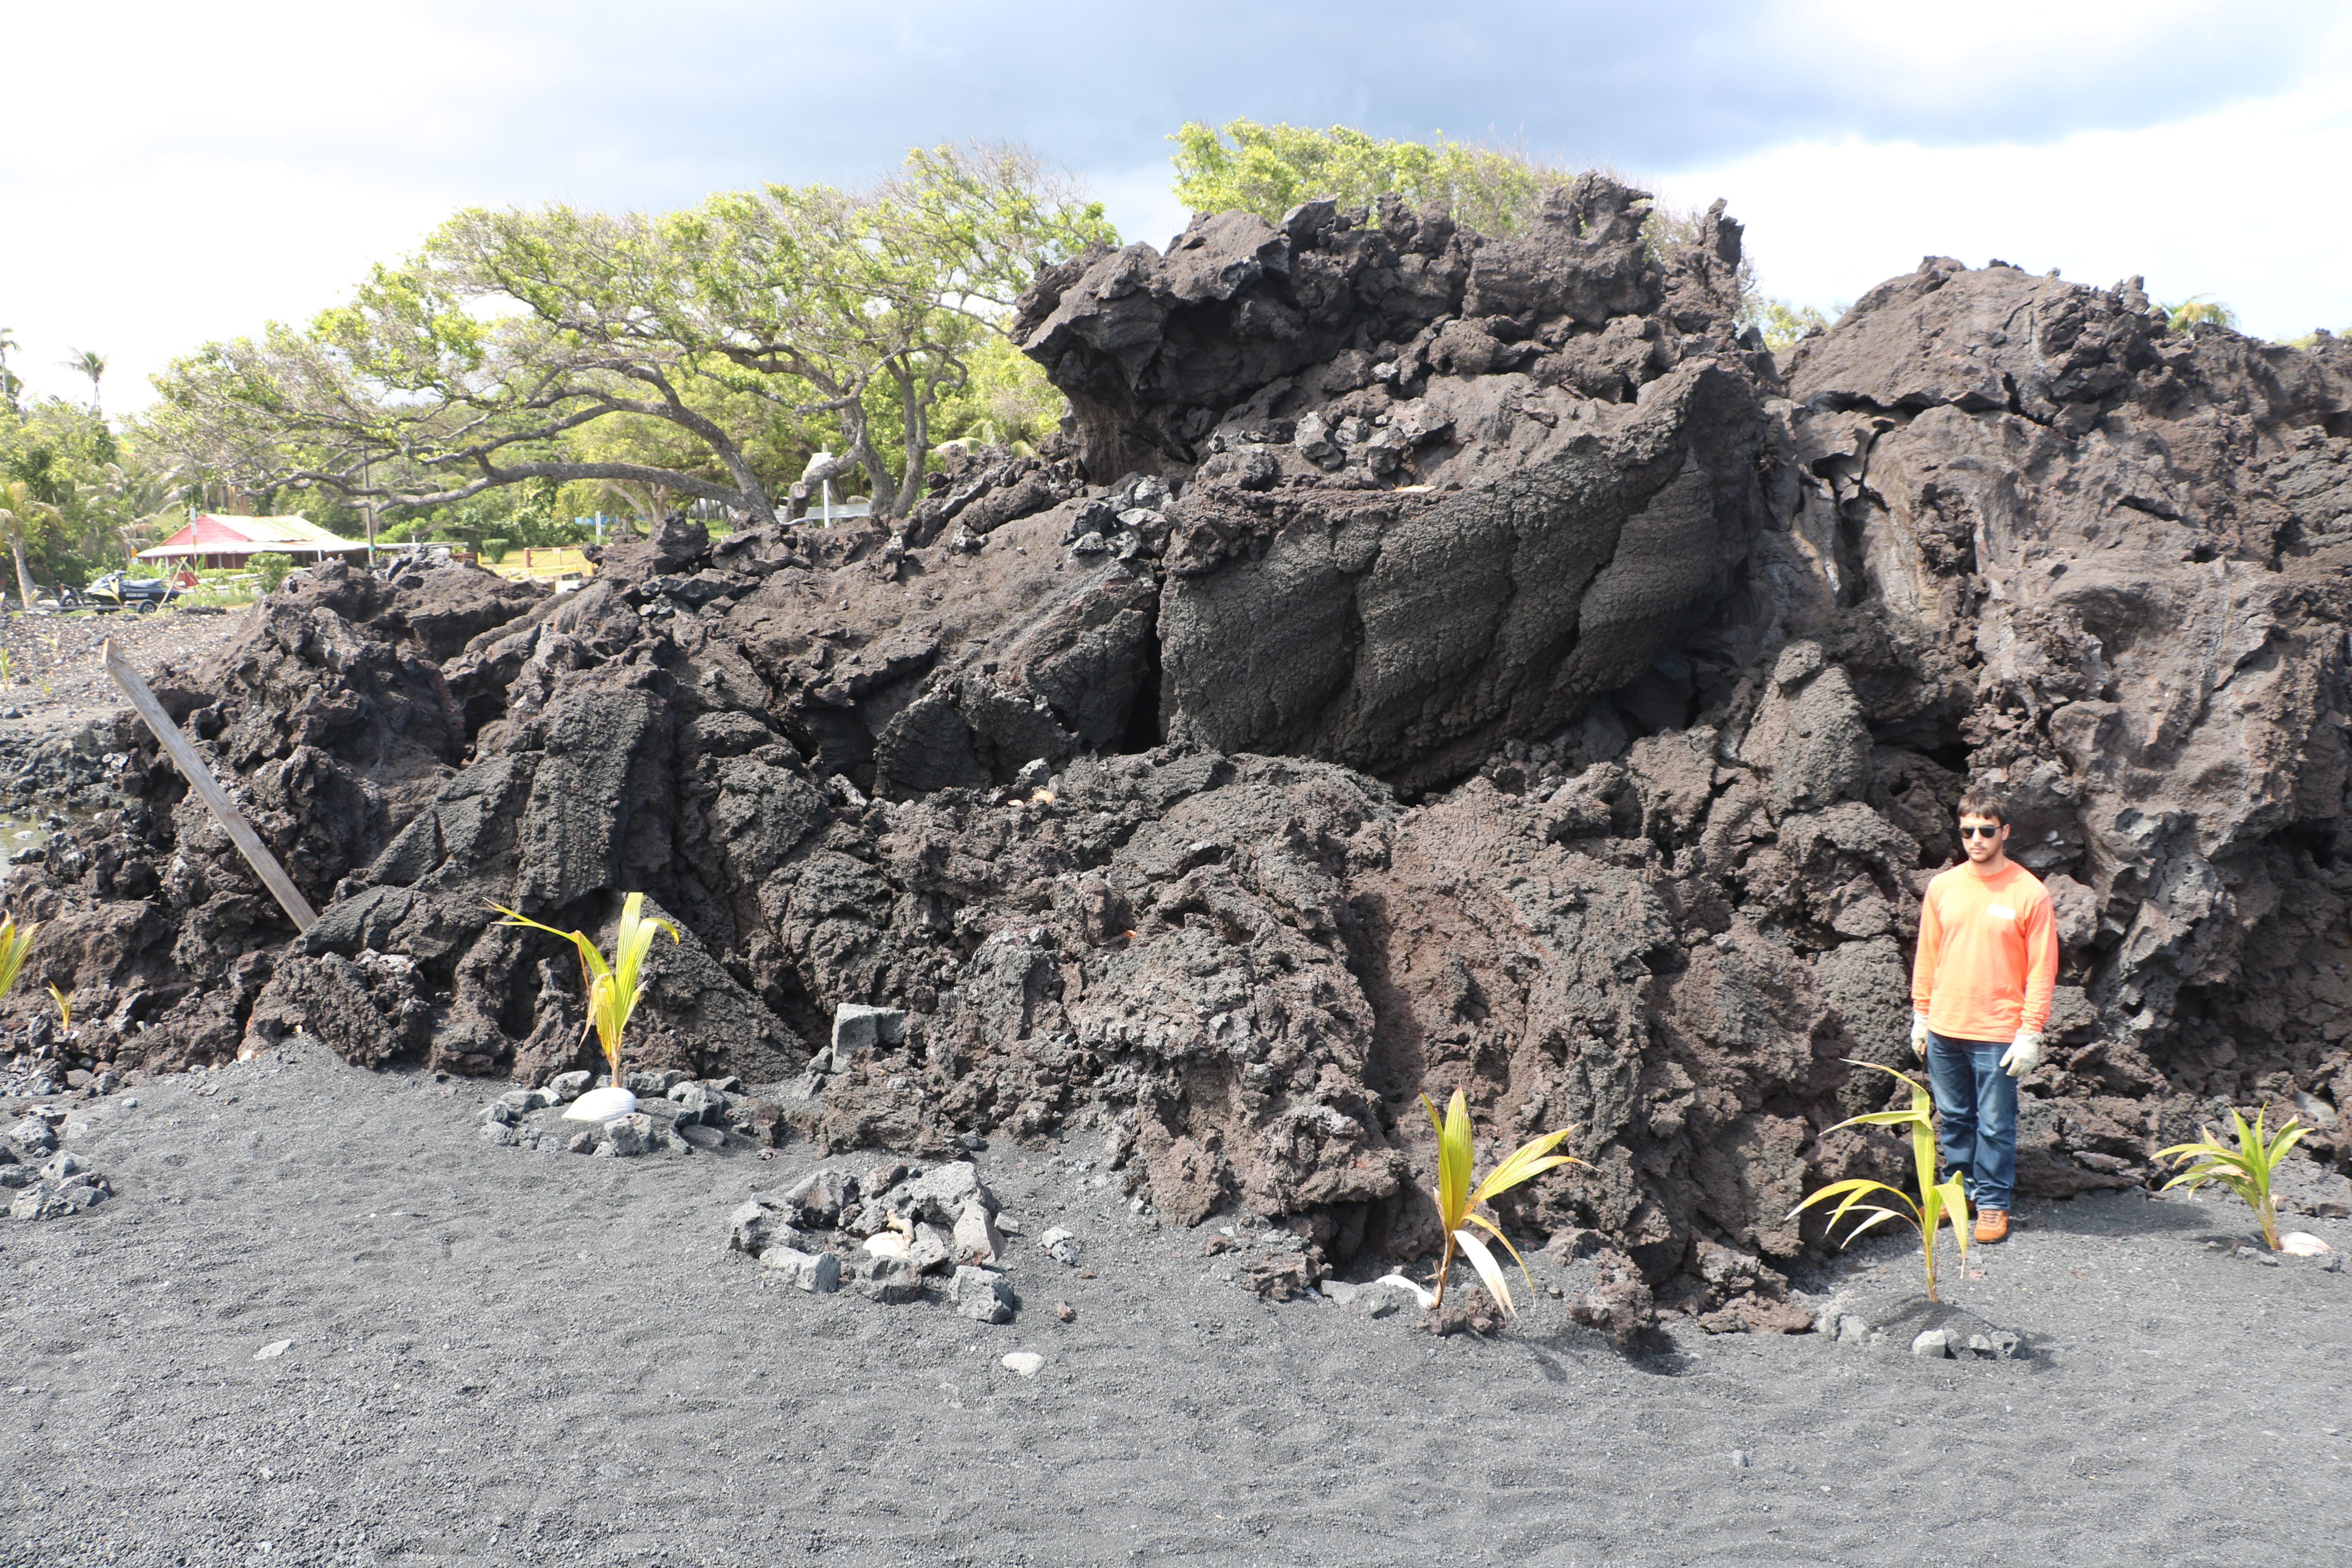 A geologist stands in front of a towering black flow of lava, which displays many squeeze-up features, looking like toothpaste that scraped out of a tube.